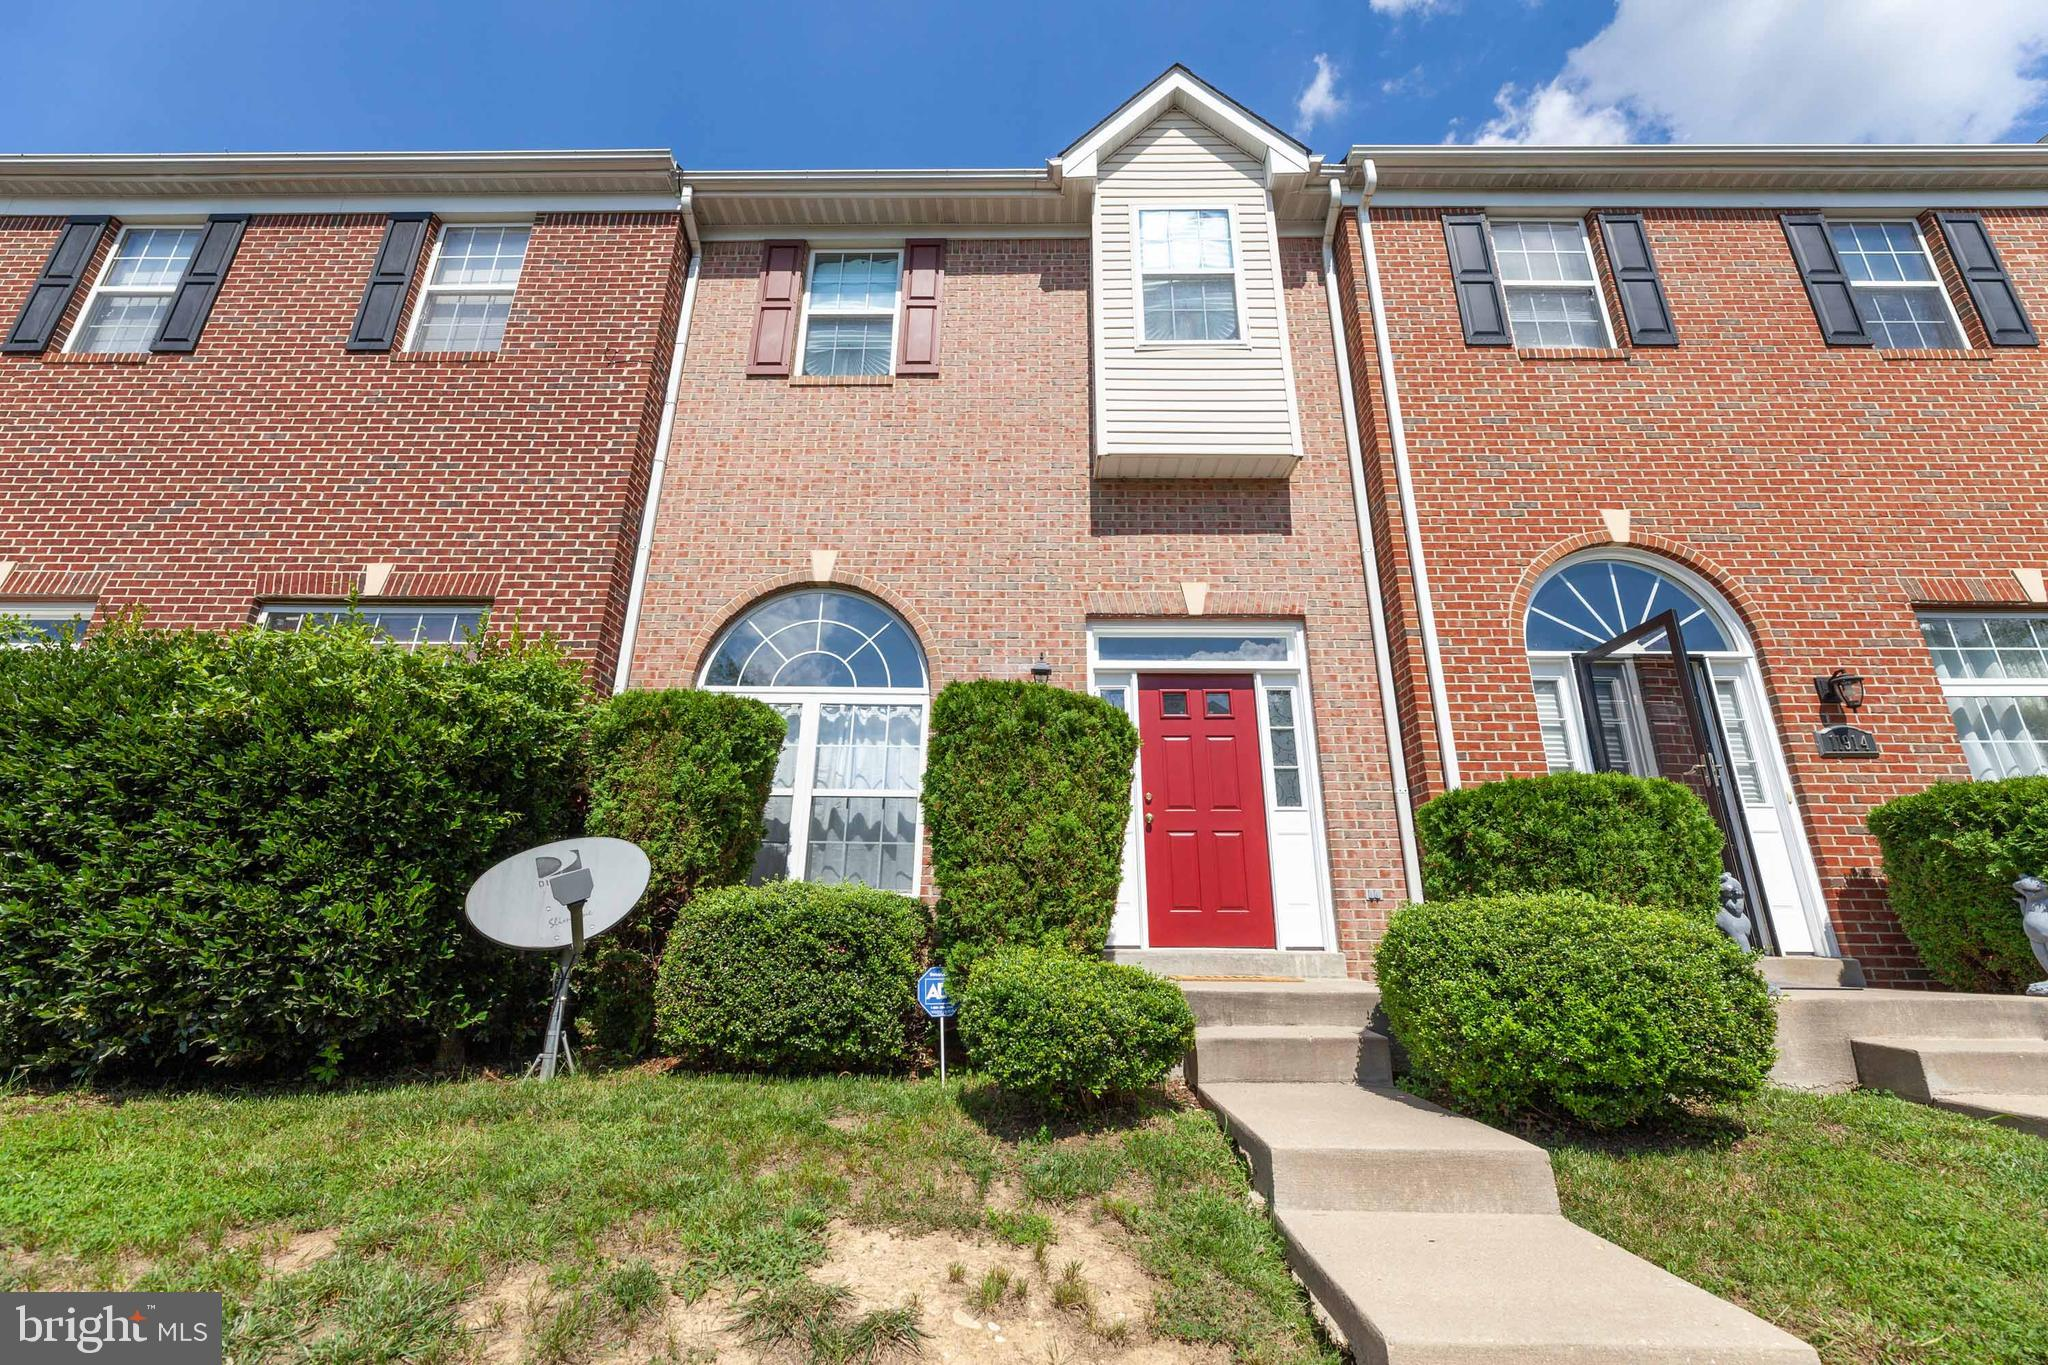 Highest and Best Offer by 12pm on Monday, September 21st.  Buyer financing fell through!  Now is you